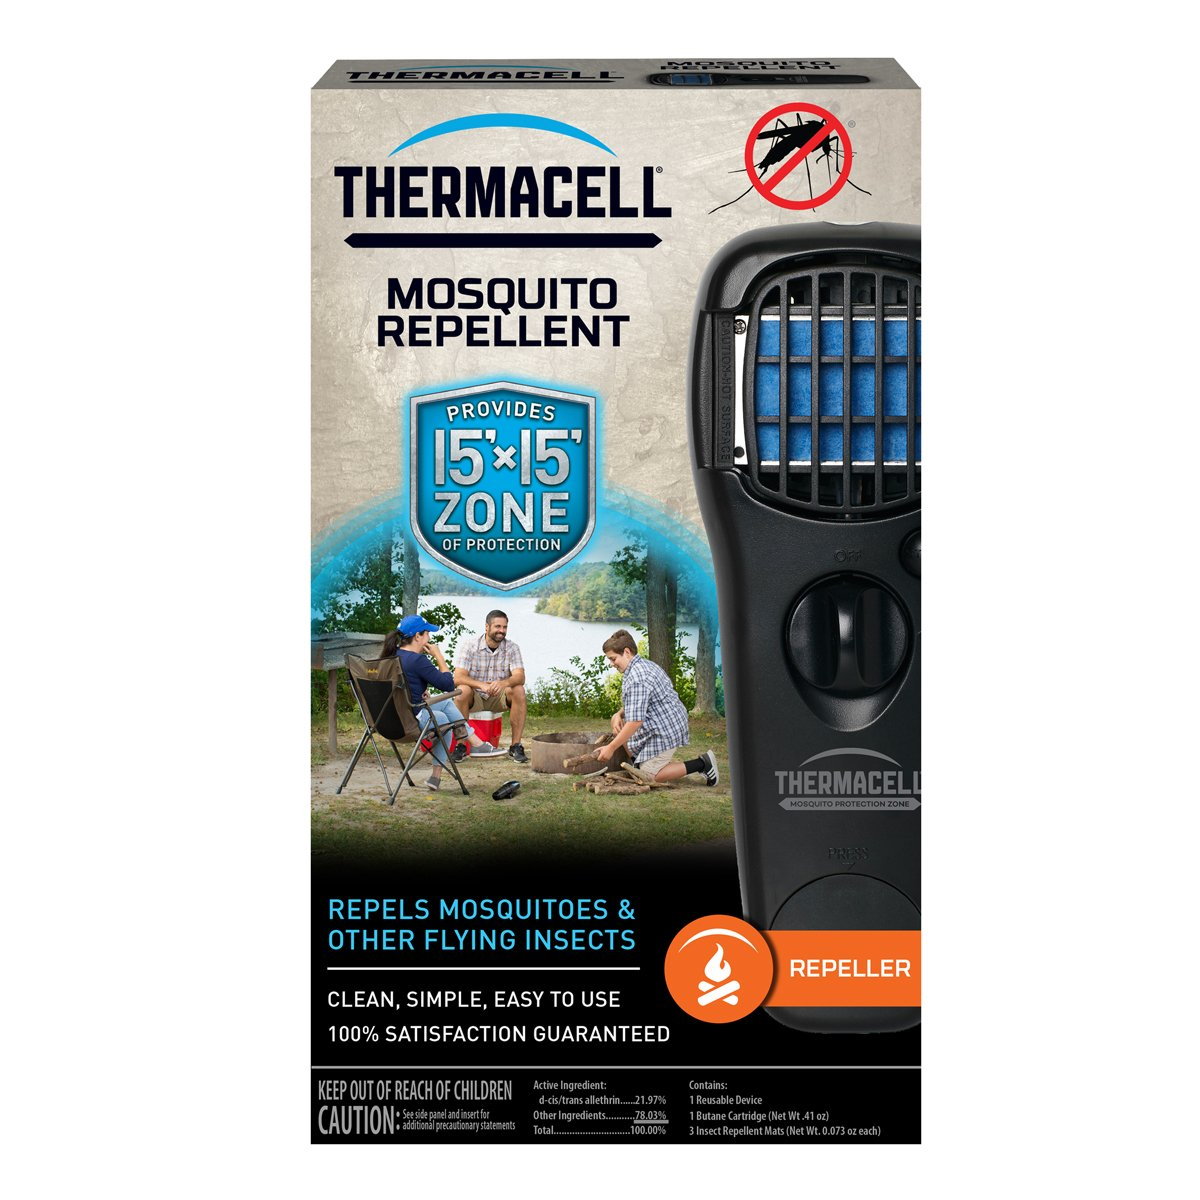 Amazon.com: Thermacell MR LJ Portable Mosquito Repeller, Black: Sports U0026  Outdoors